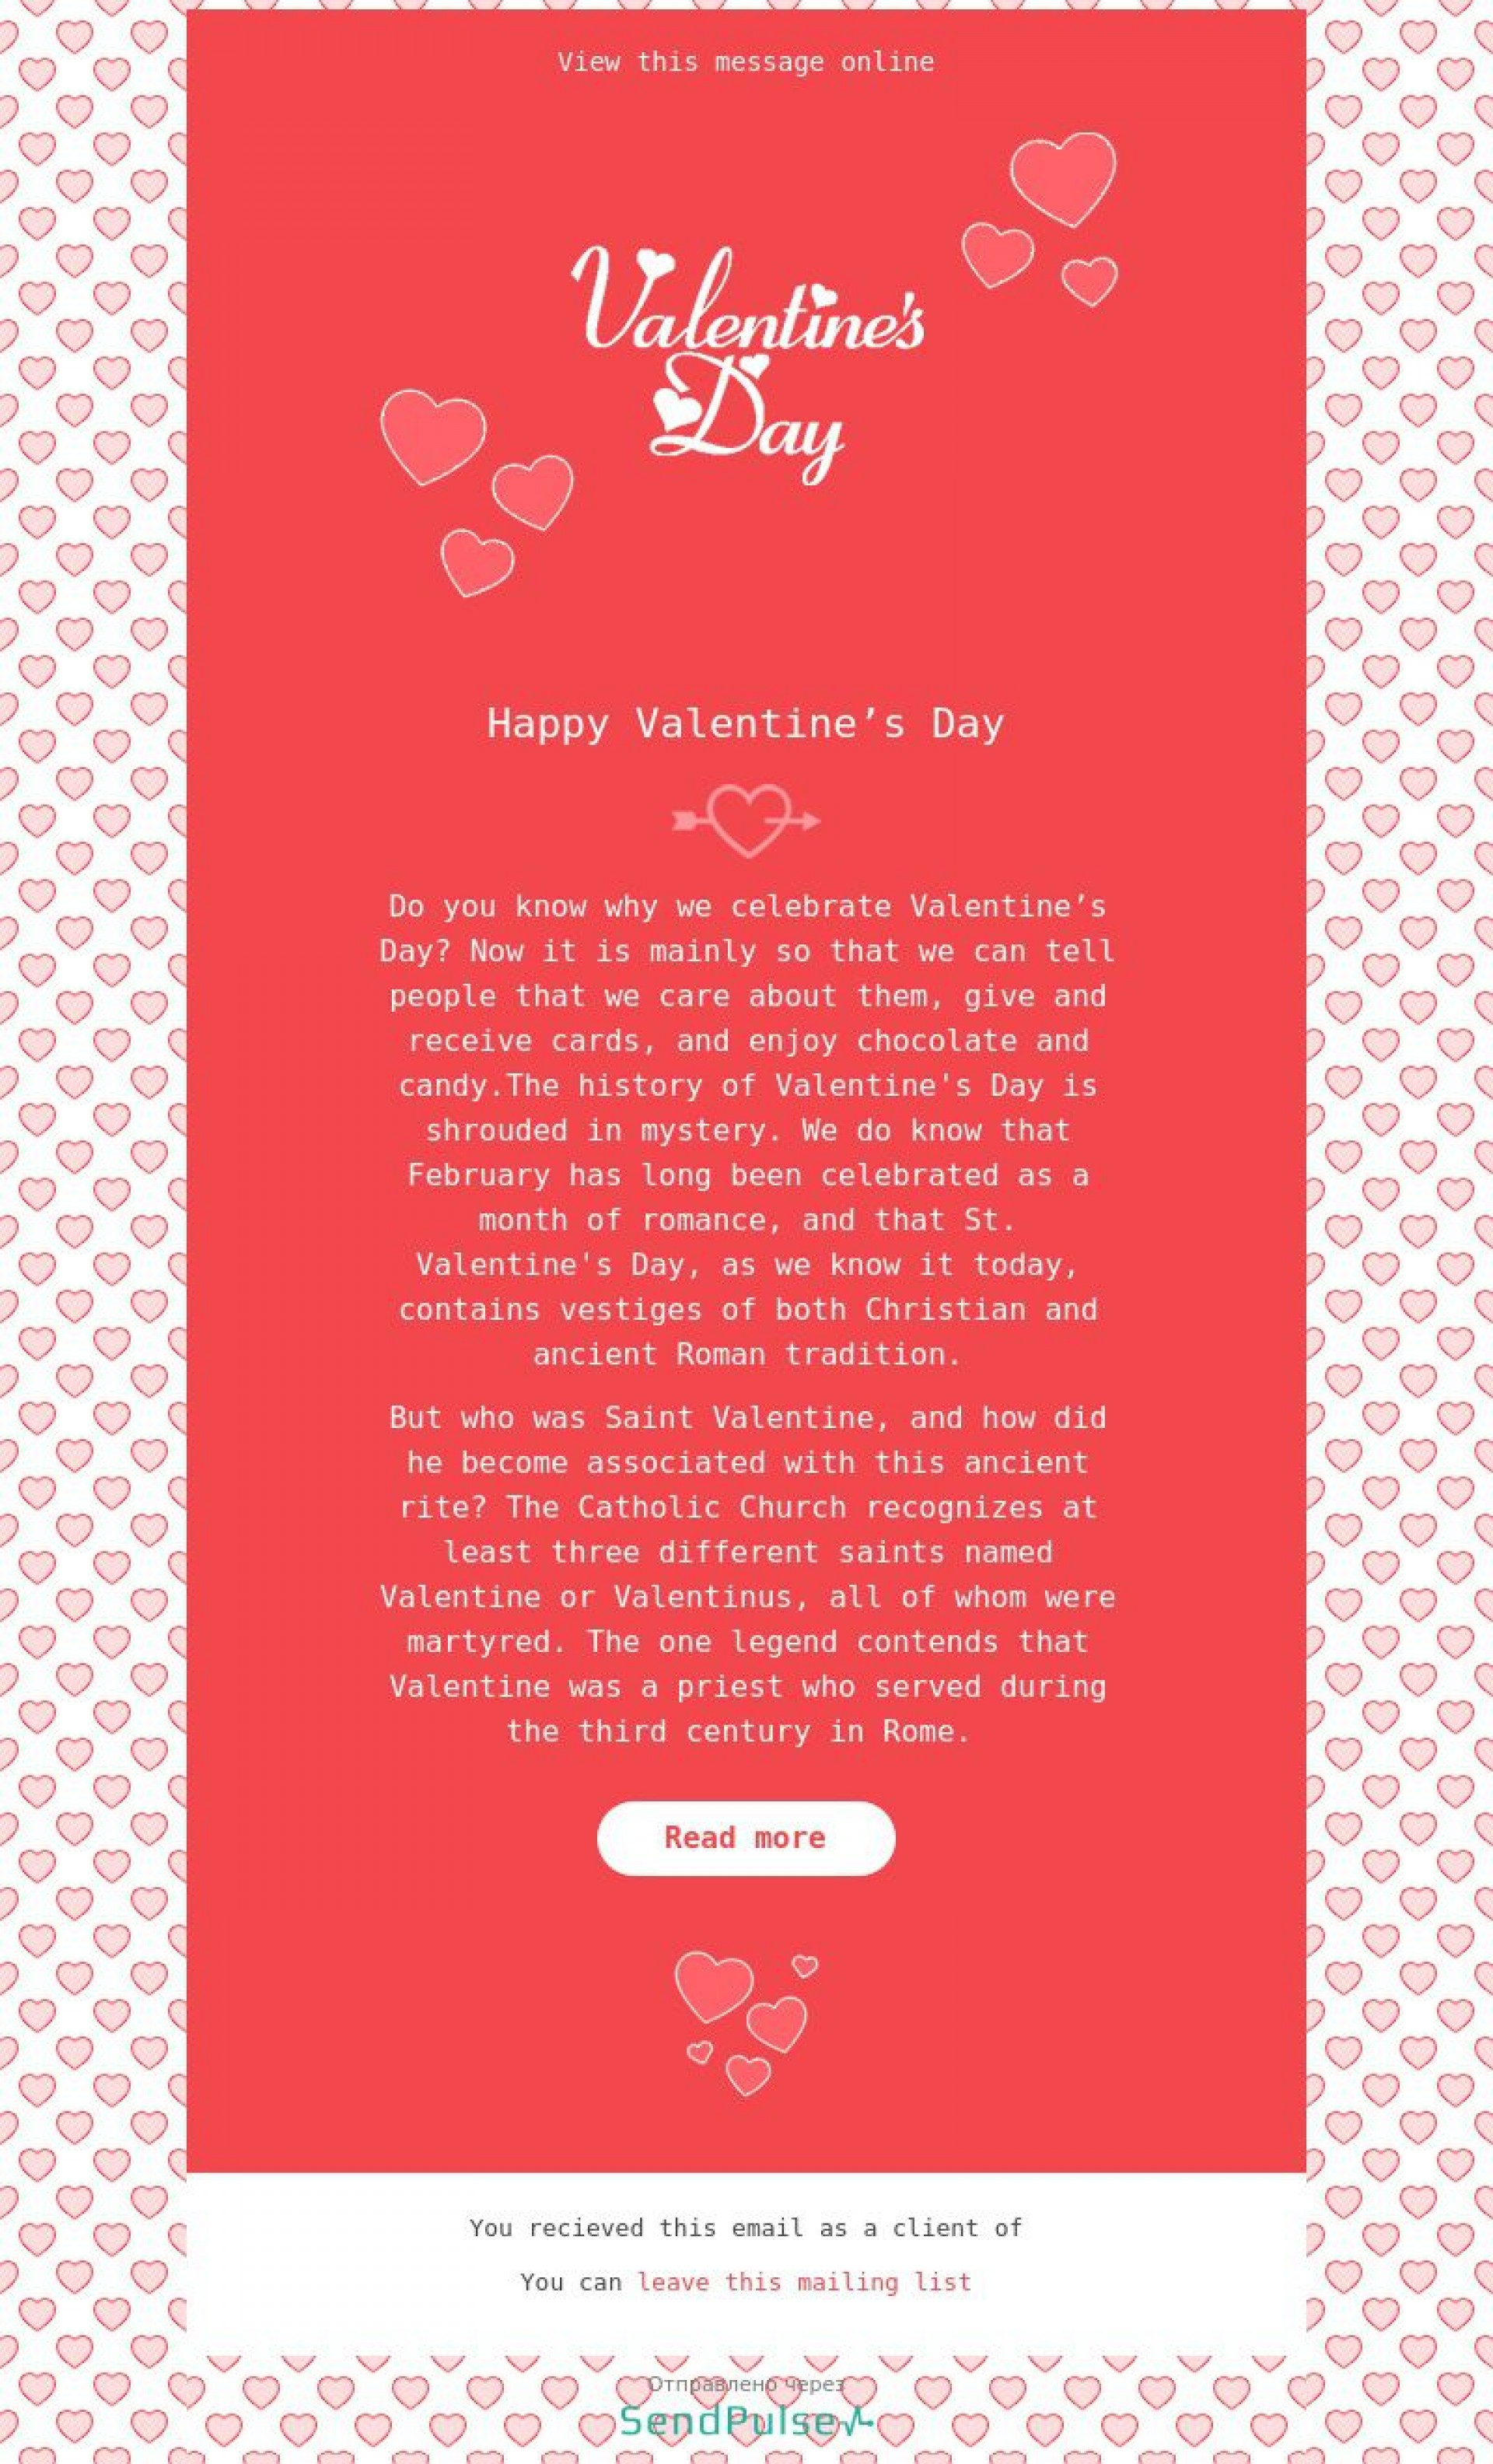 000 Unusual Holiday E Mail Template Design  Templates Mailchimp Email1920